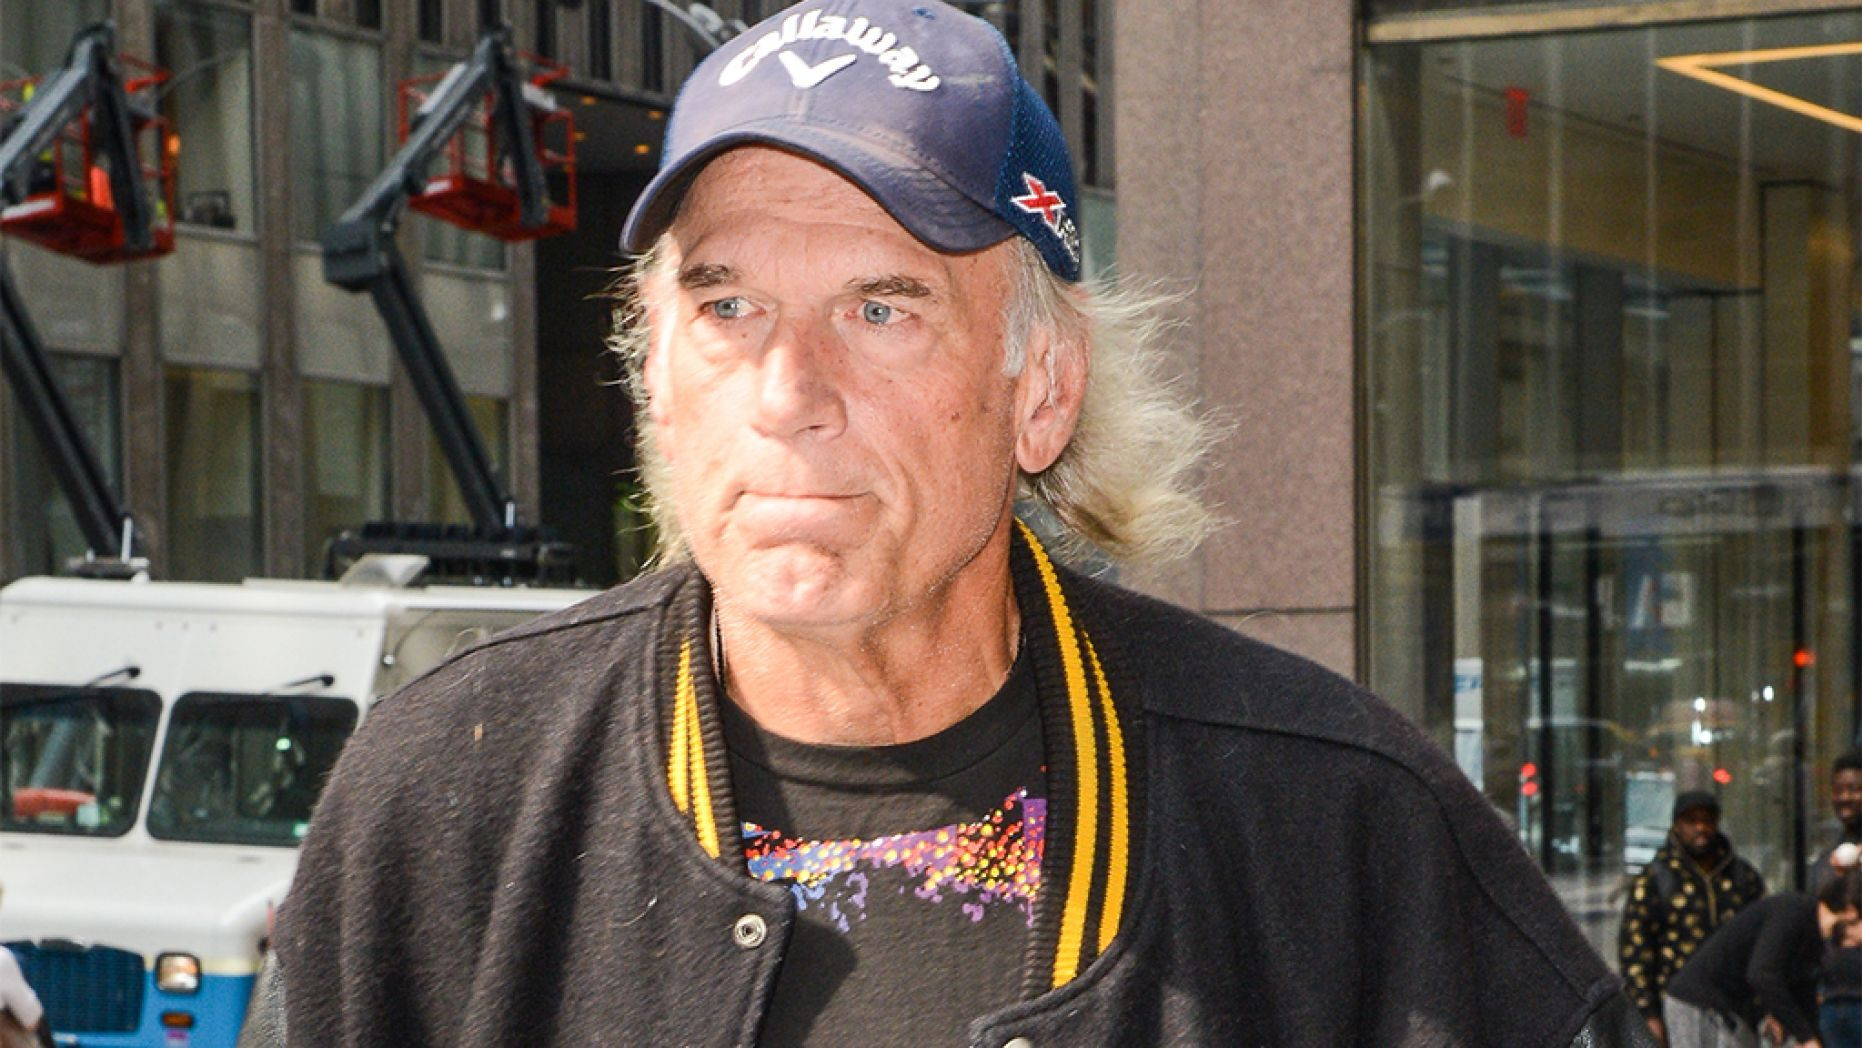 Professional wrestler Jesse Ventura leaves the Sirius XM Studios on October 13, 2015, in New York City.